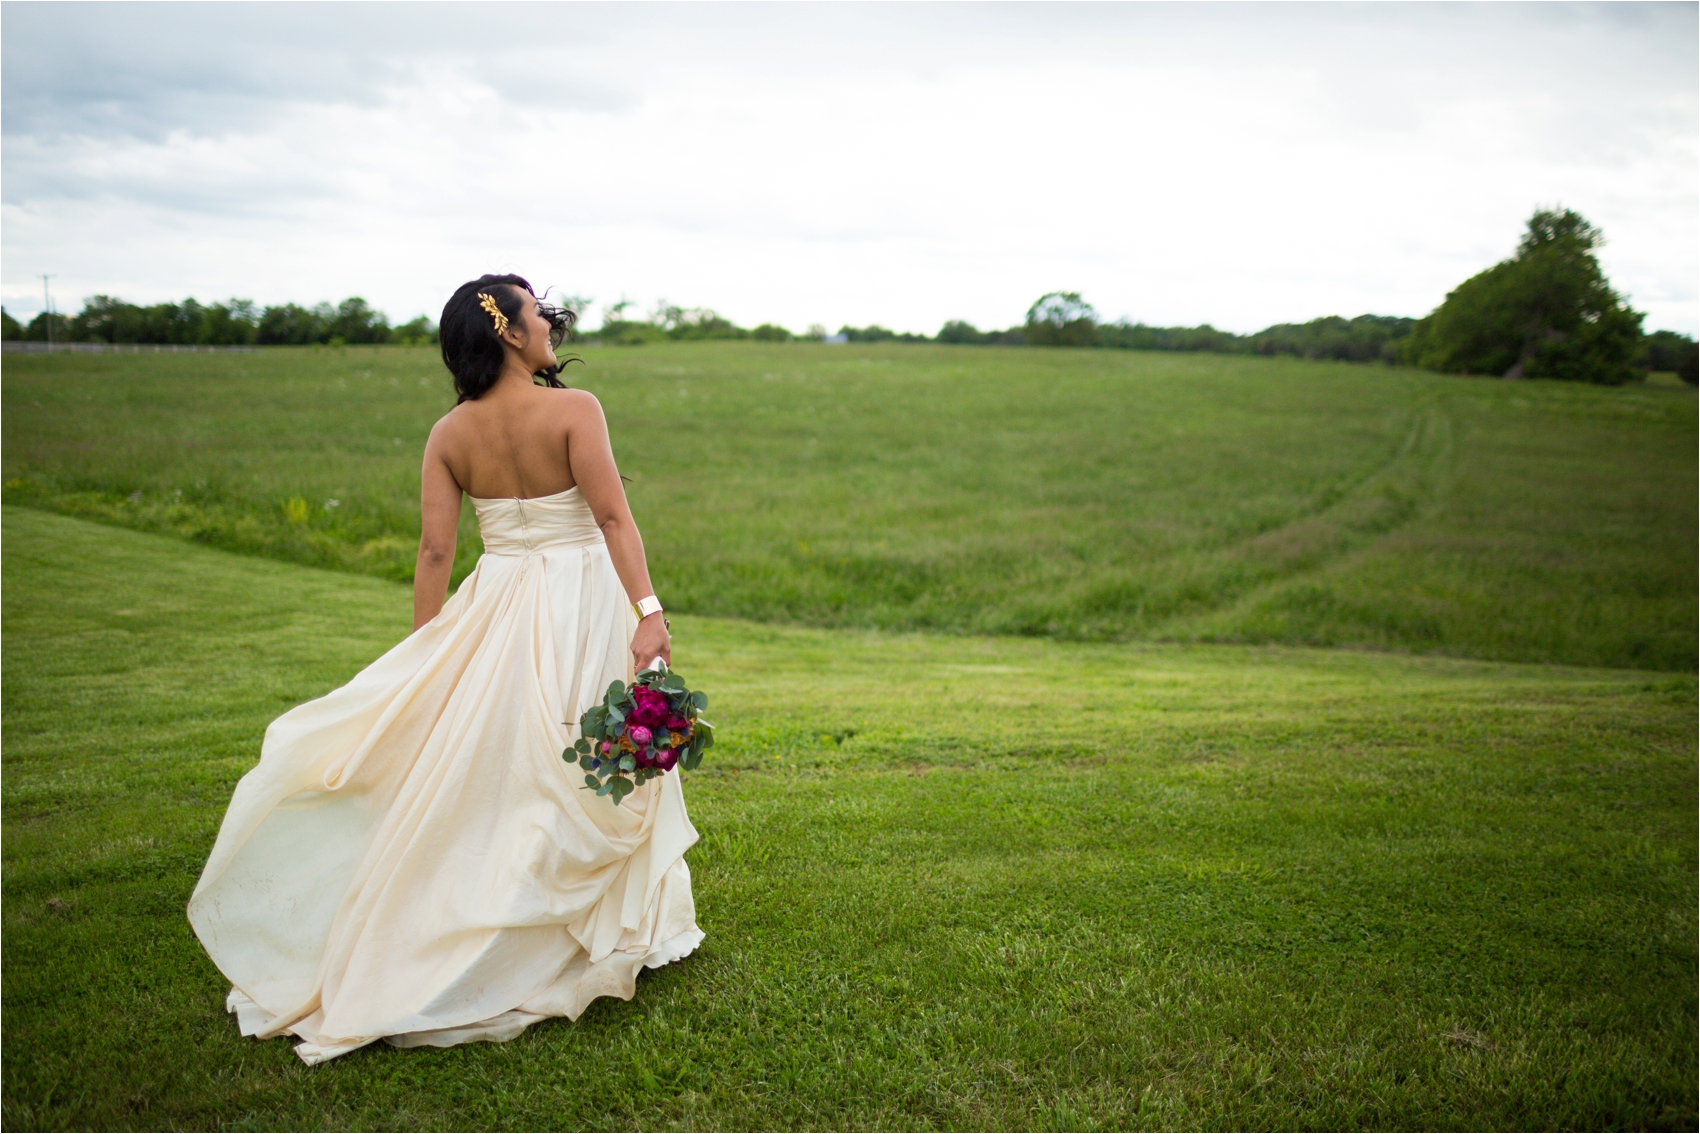 Brandy-Hill-Farm-Spring-Virginia-Wedding-Feather-and-Oak-Photography-4041.jpg